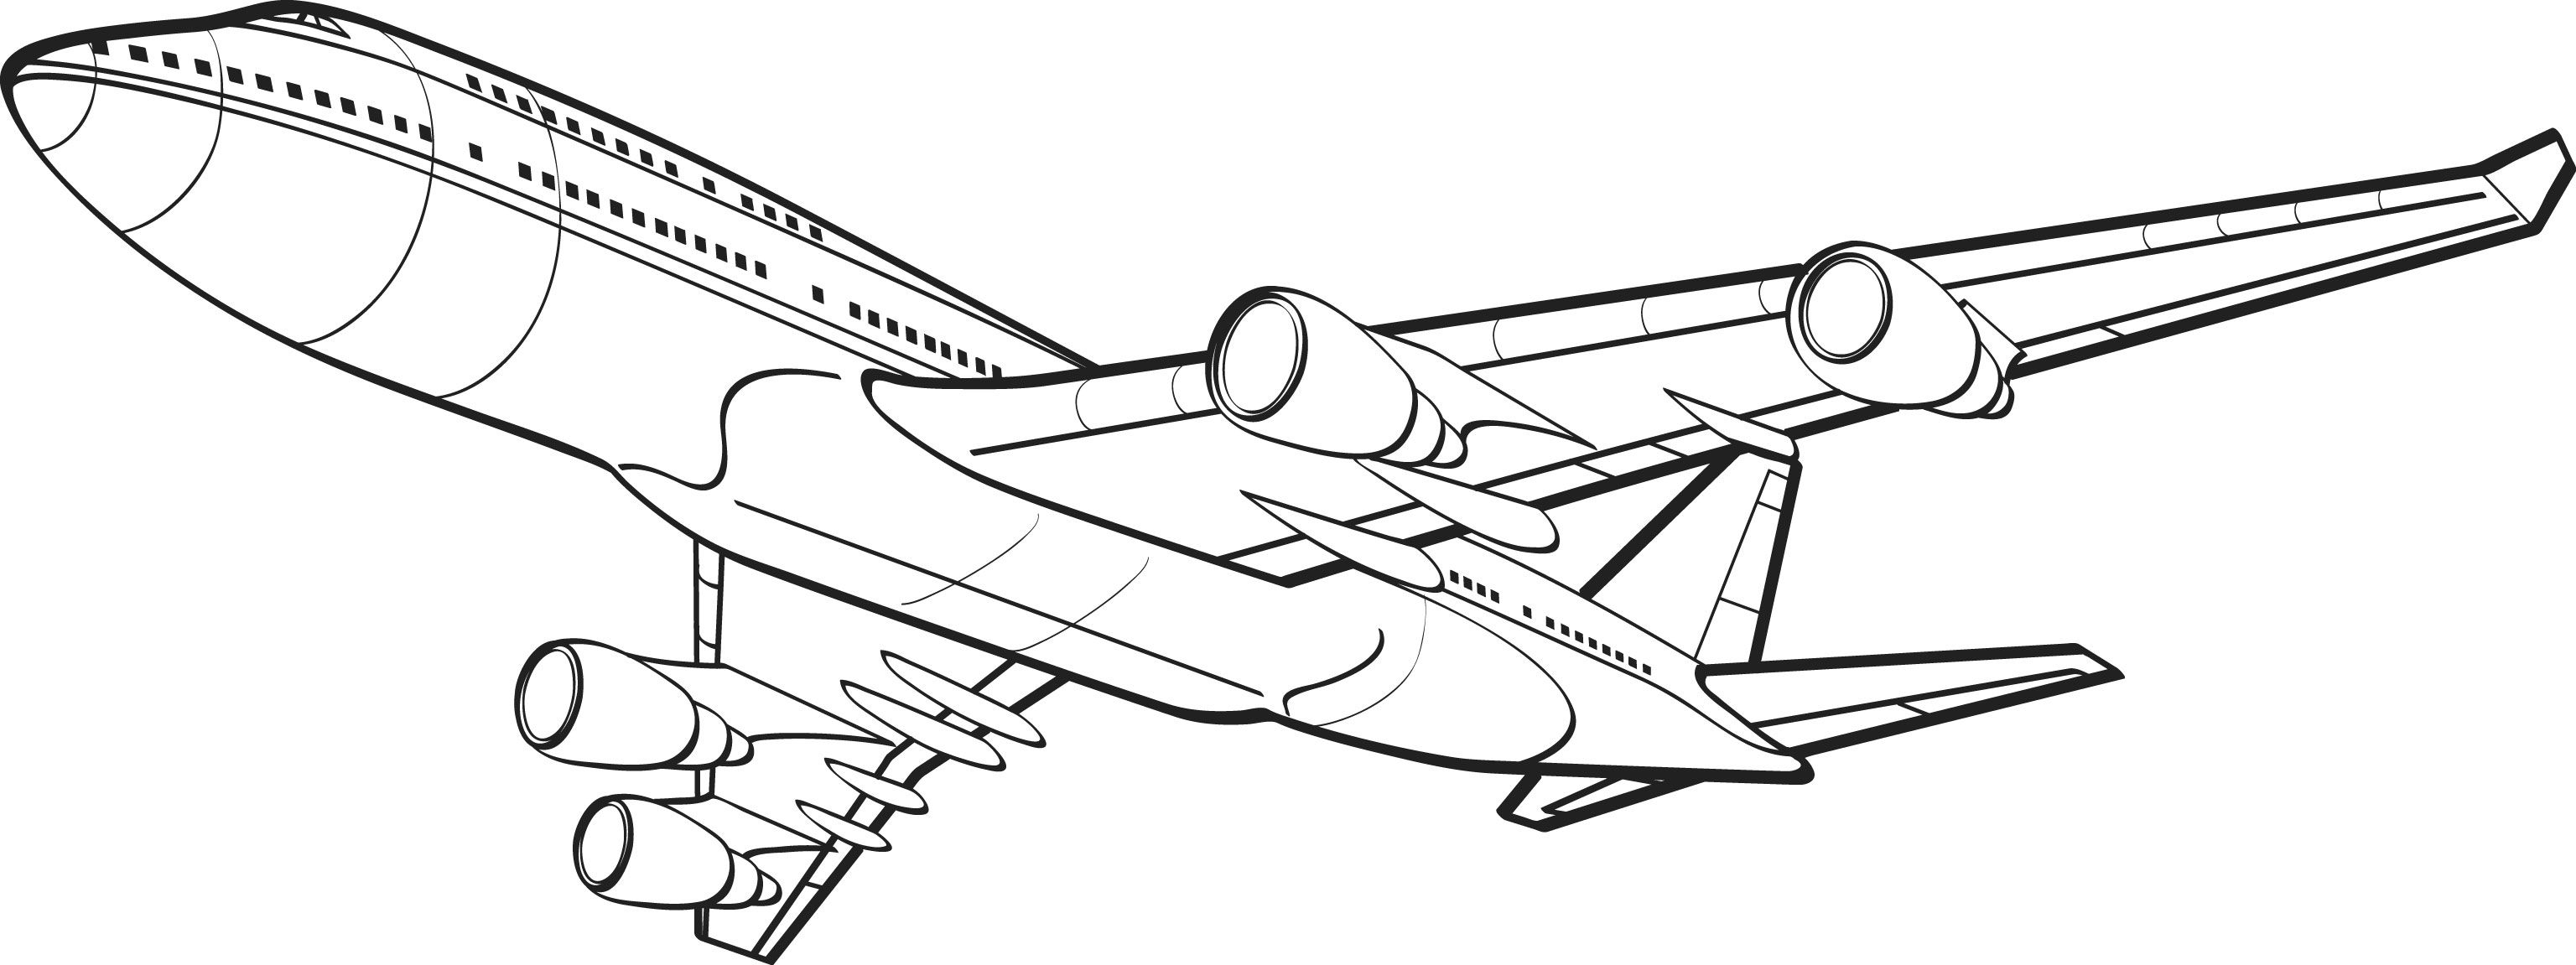 Boing 747 Bottom Coloring Page Airplane Coloring Pages Coloring